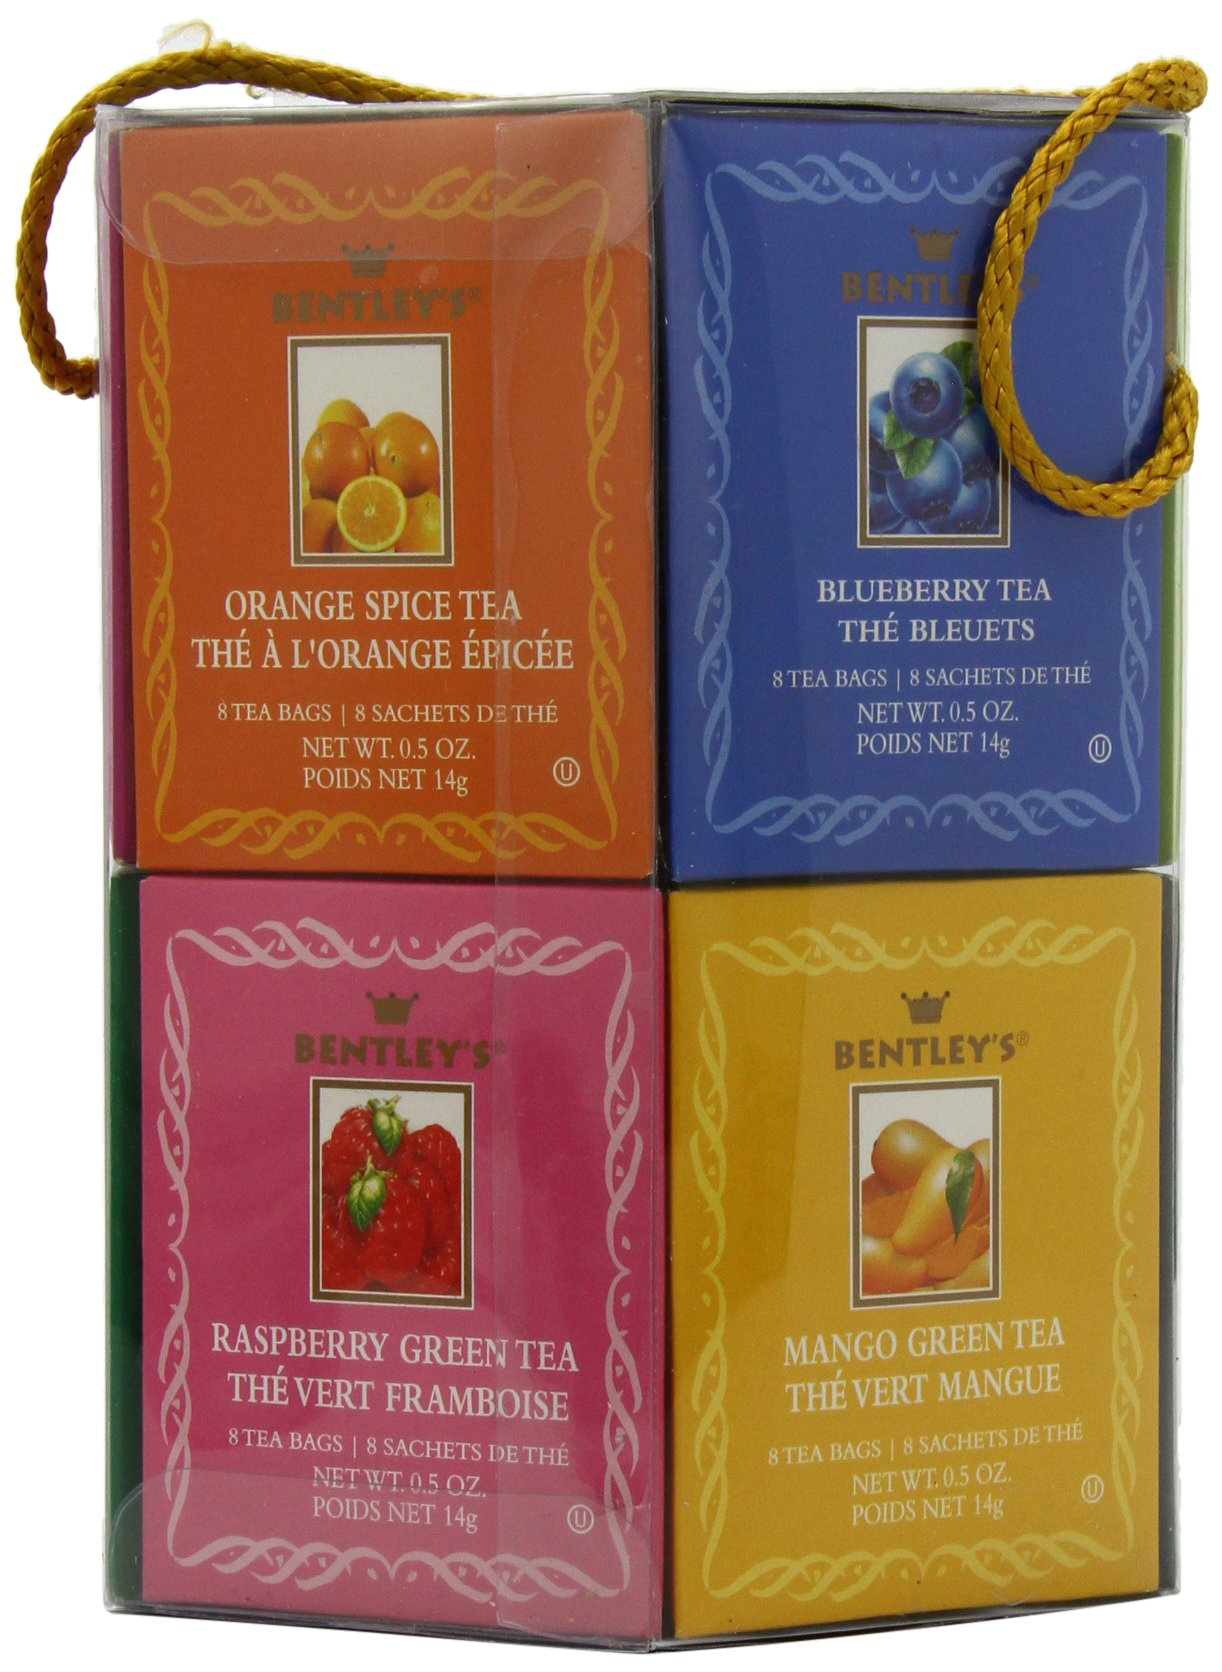 Bentley's Royal Classic Collection Assorted Flavor Gift Pack, 96 Tea Bags (Pack of 2), Includes 8 Bags Each of a Variety of Black and Green Tea Flavors by Bentley's (Image #1)